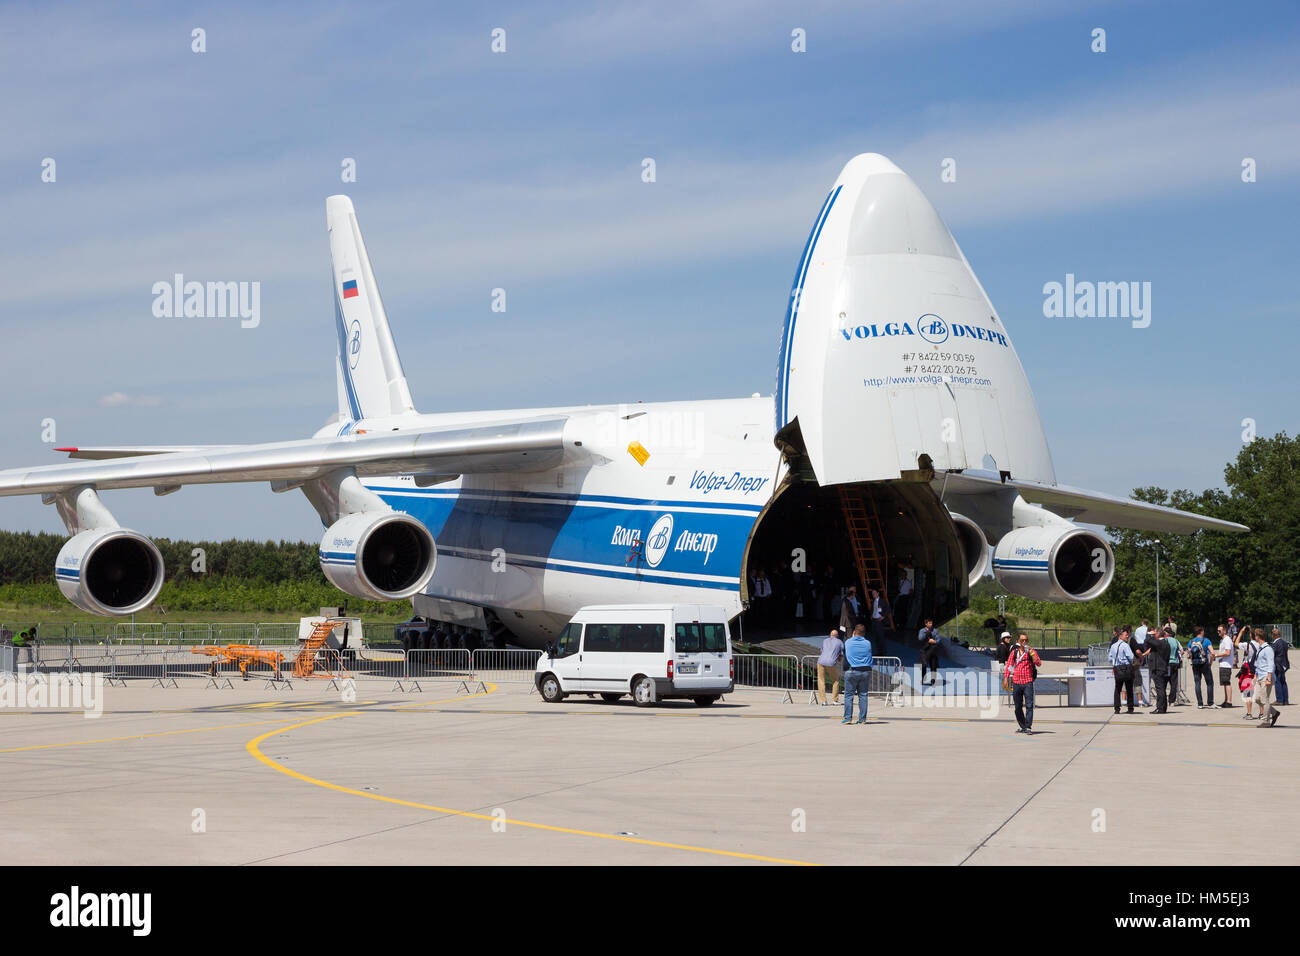 BERLIN, GERMANY - MAY 22, 2014: Russian made Antonov An-124 transport plane at the International Aerospace Exhibition - Stock Image